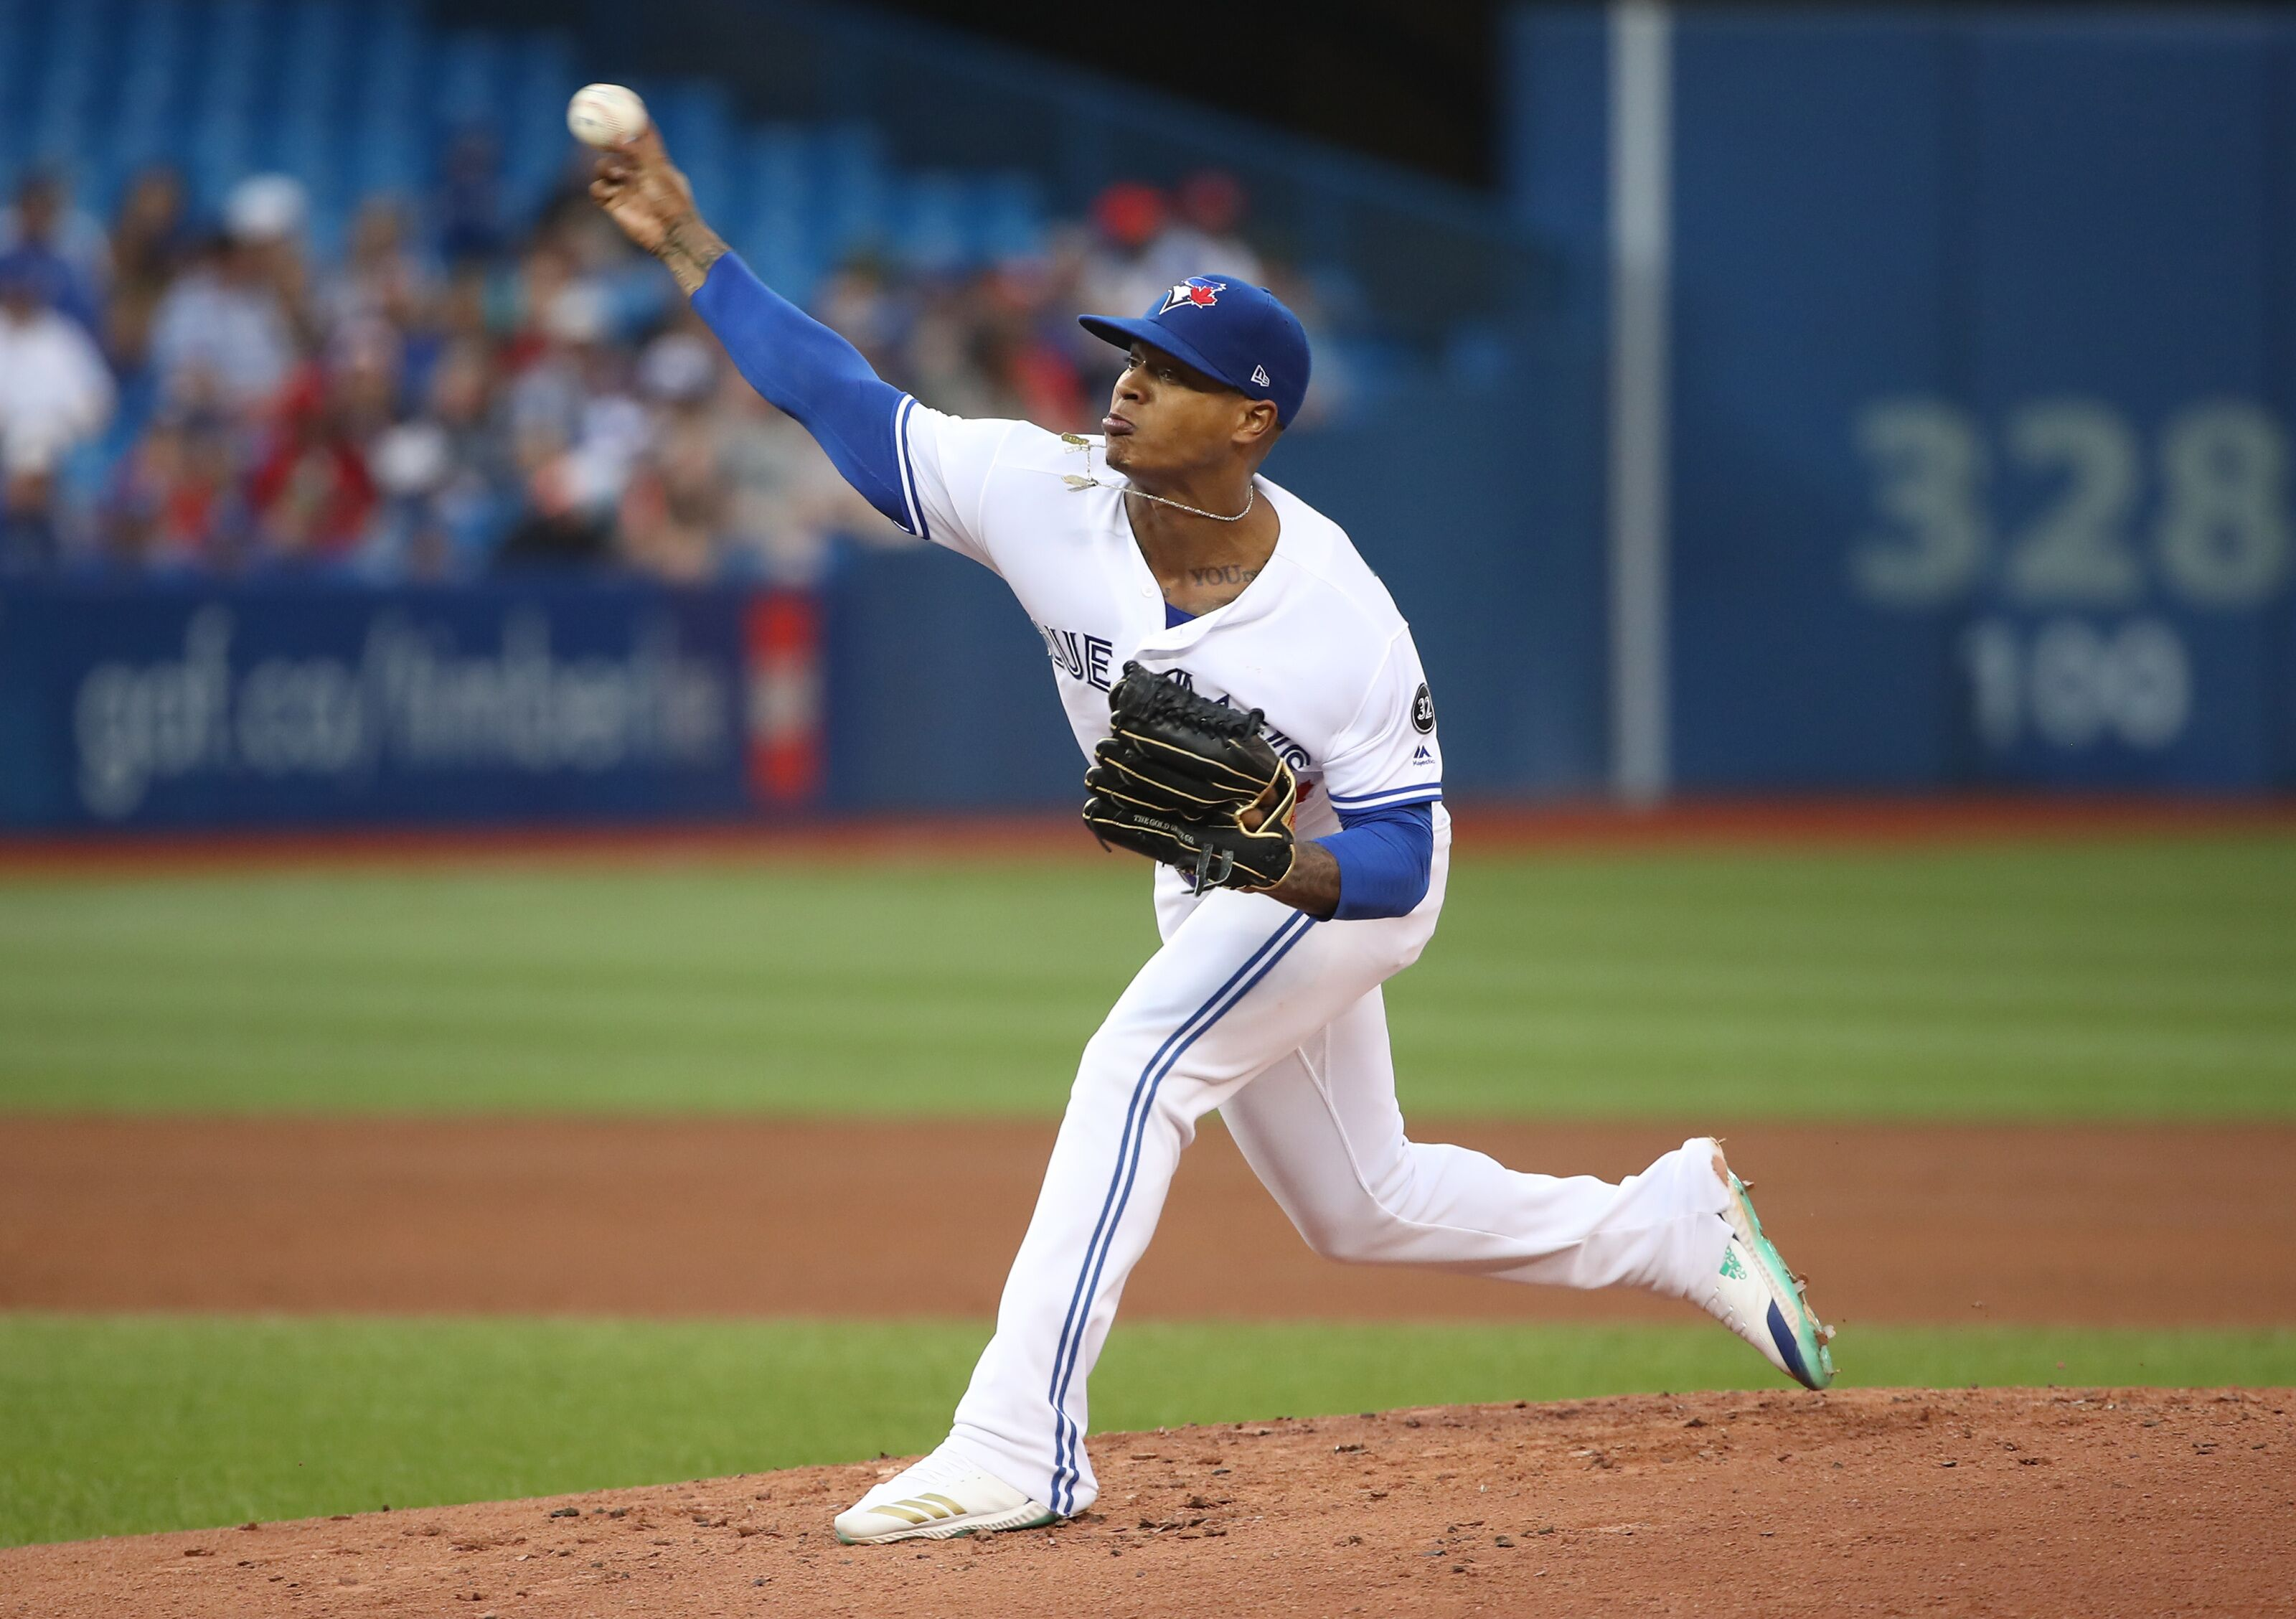 Duke in the MLB: Marcus Stroman ready to respond after tough season